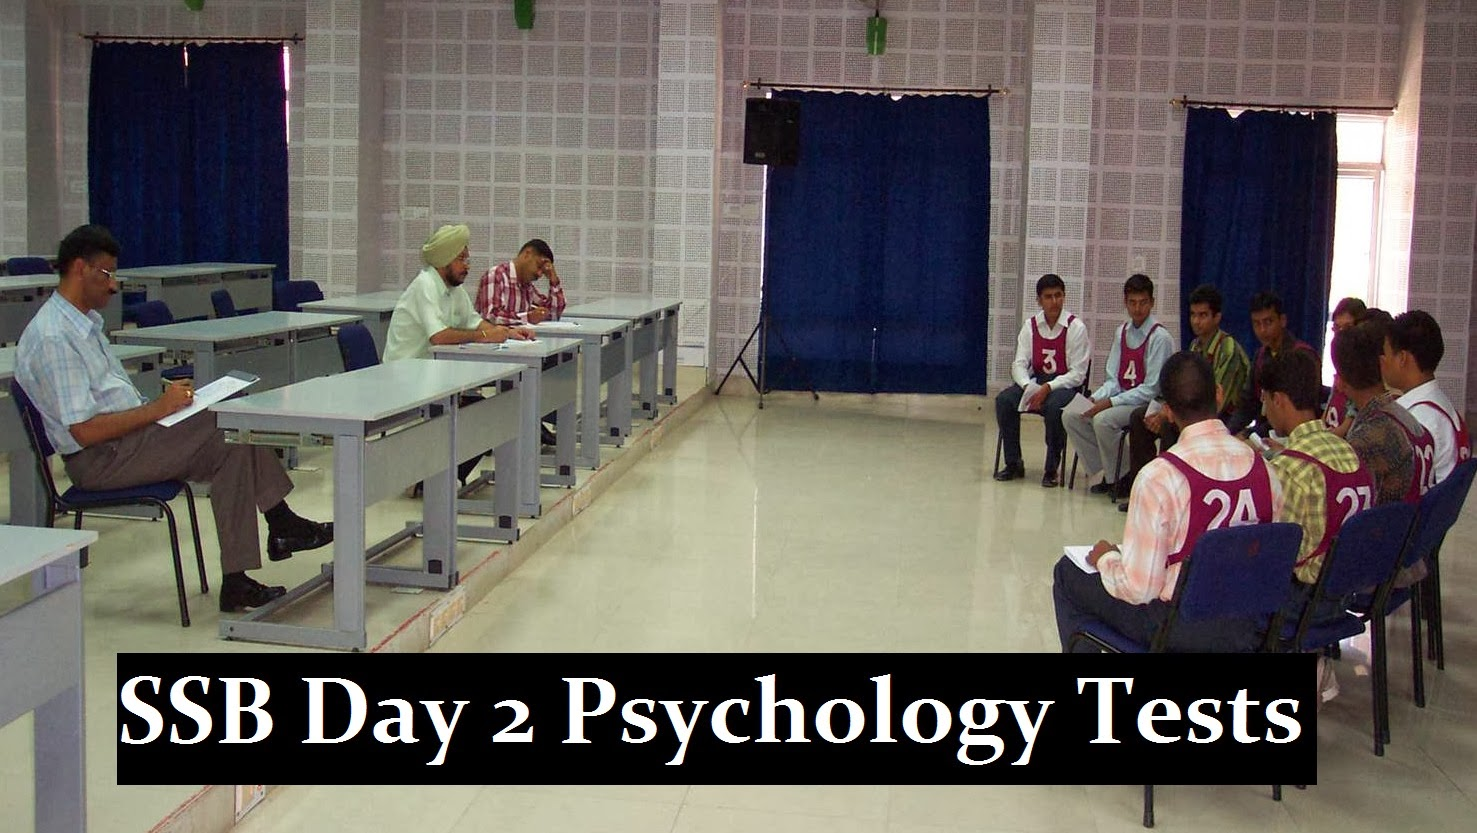 SSB Day 2 psychology tests